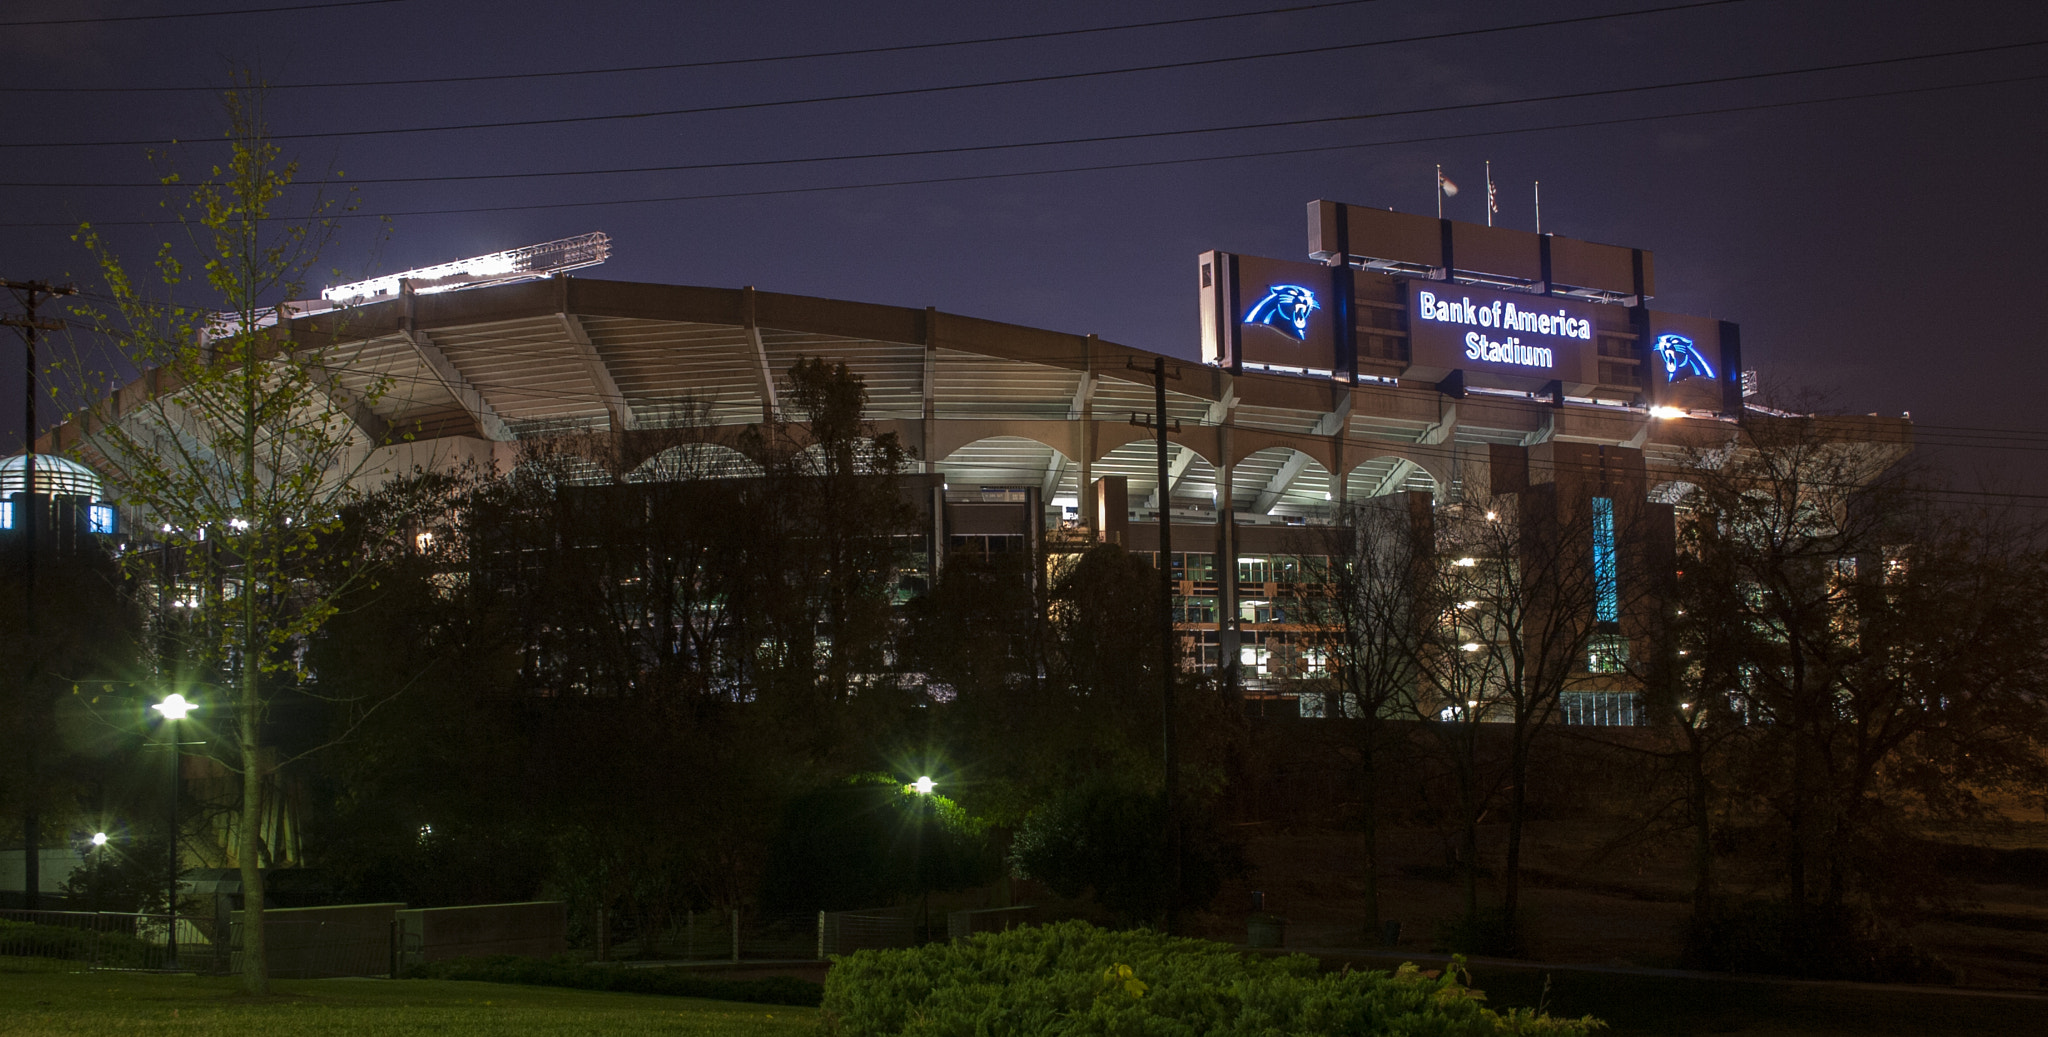 Photograph Bank Of America Stadium by Caleb McKnight on 500px